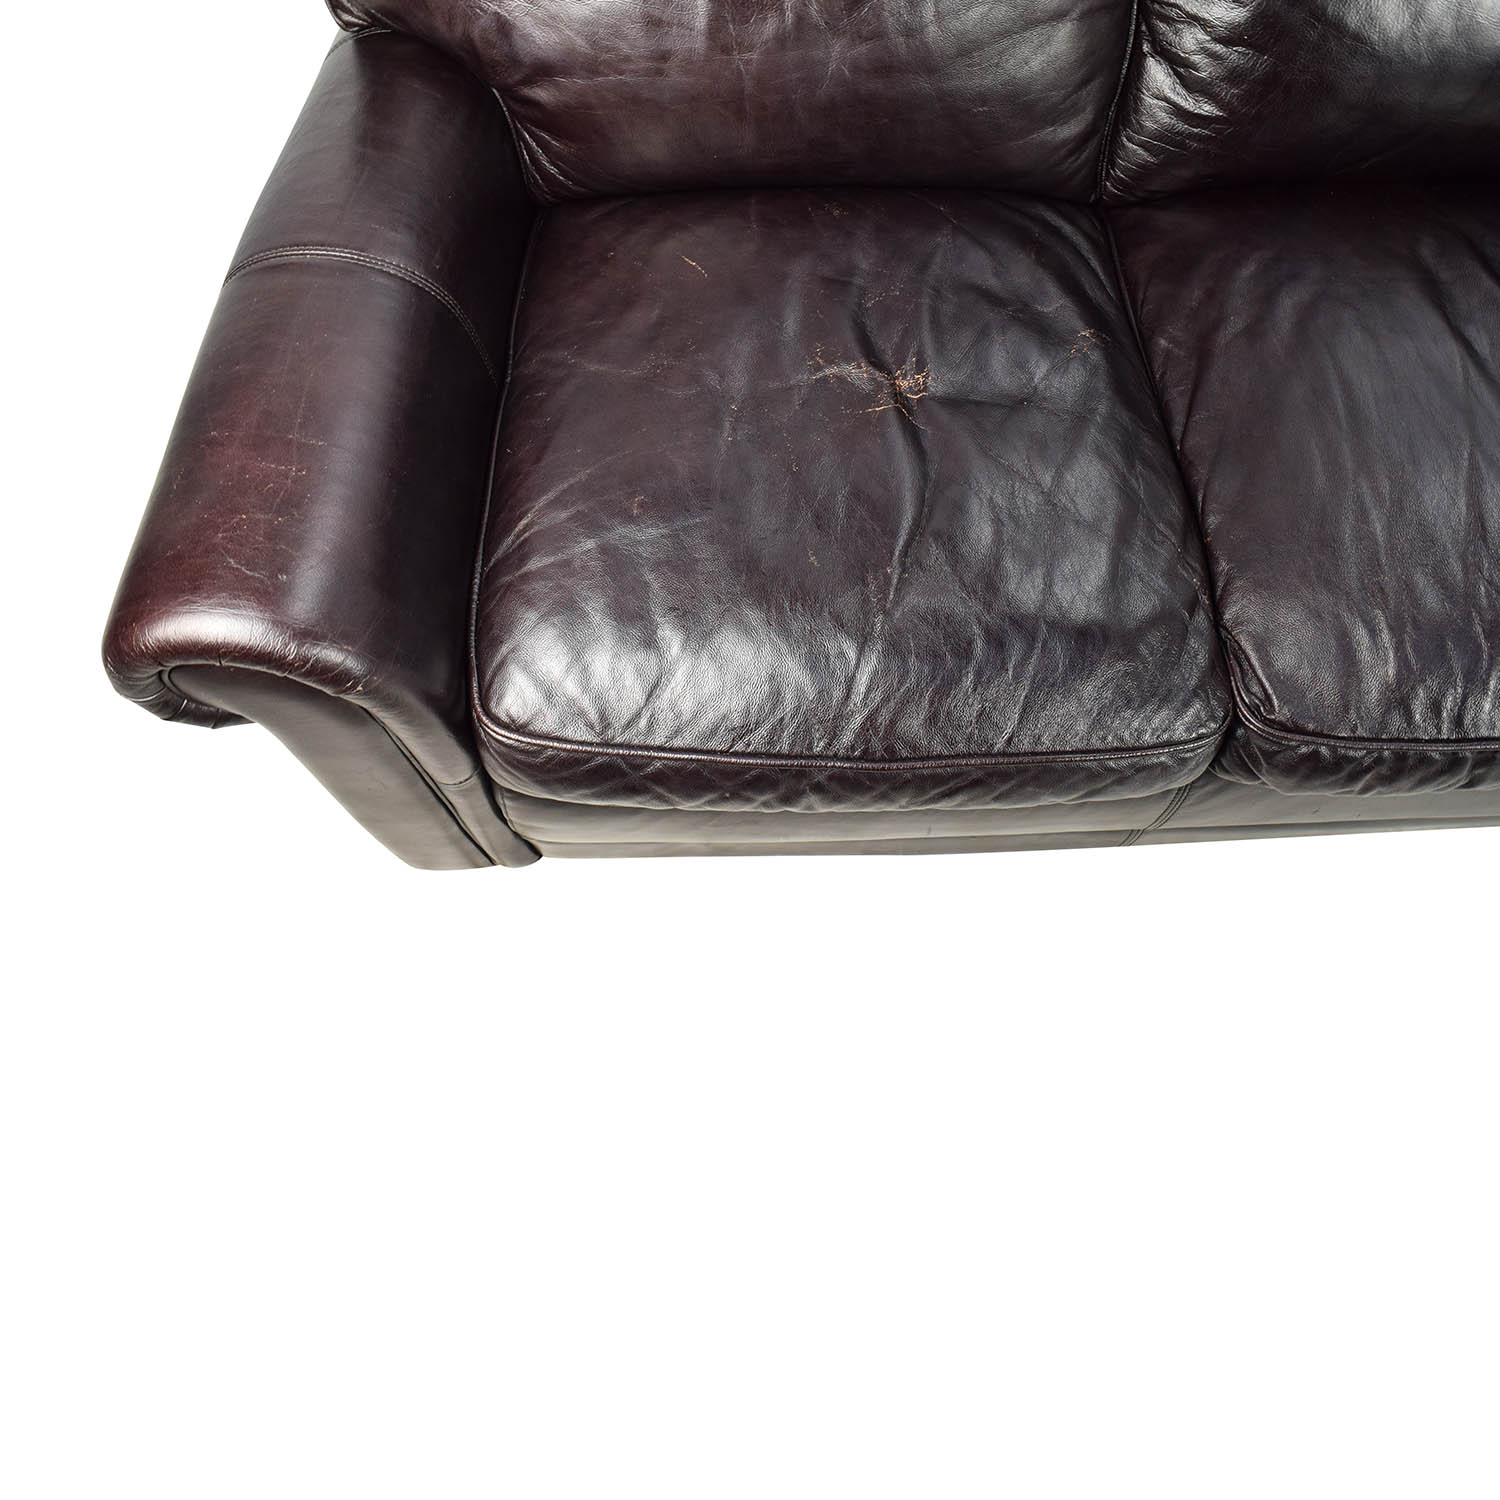 Miraculous 82 Off Bobs Discount Furniture Bobs Furniture Leather Dark Brown Sofa Sofas Evergreenethics Interior Chair Design Evergreenethicsorg